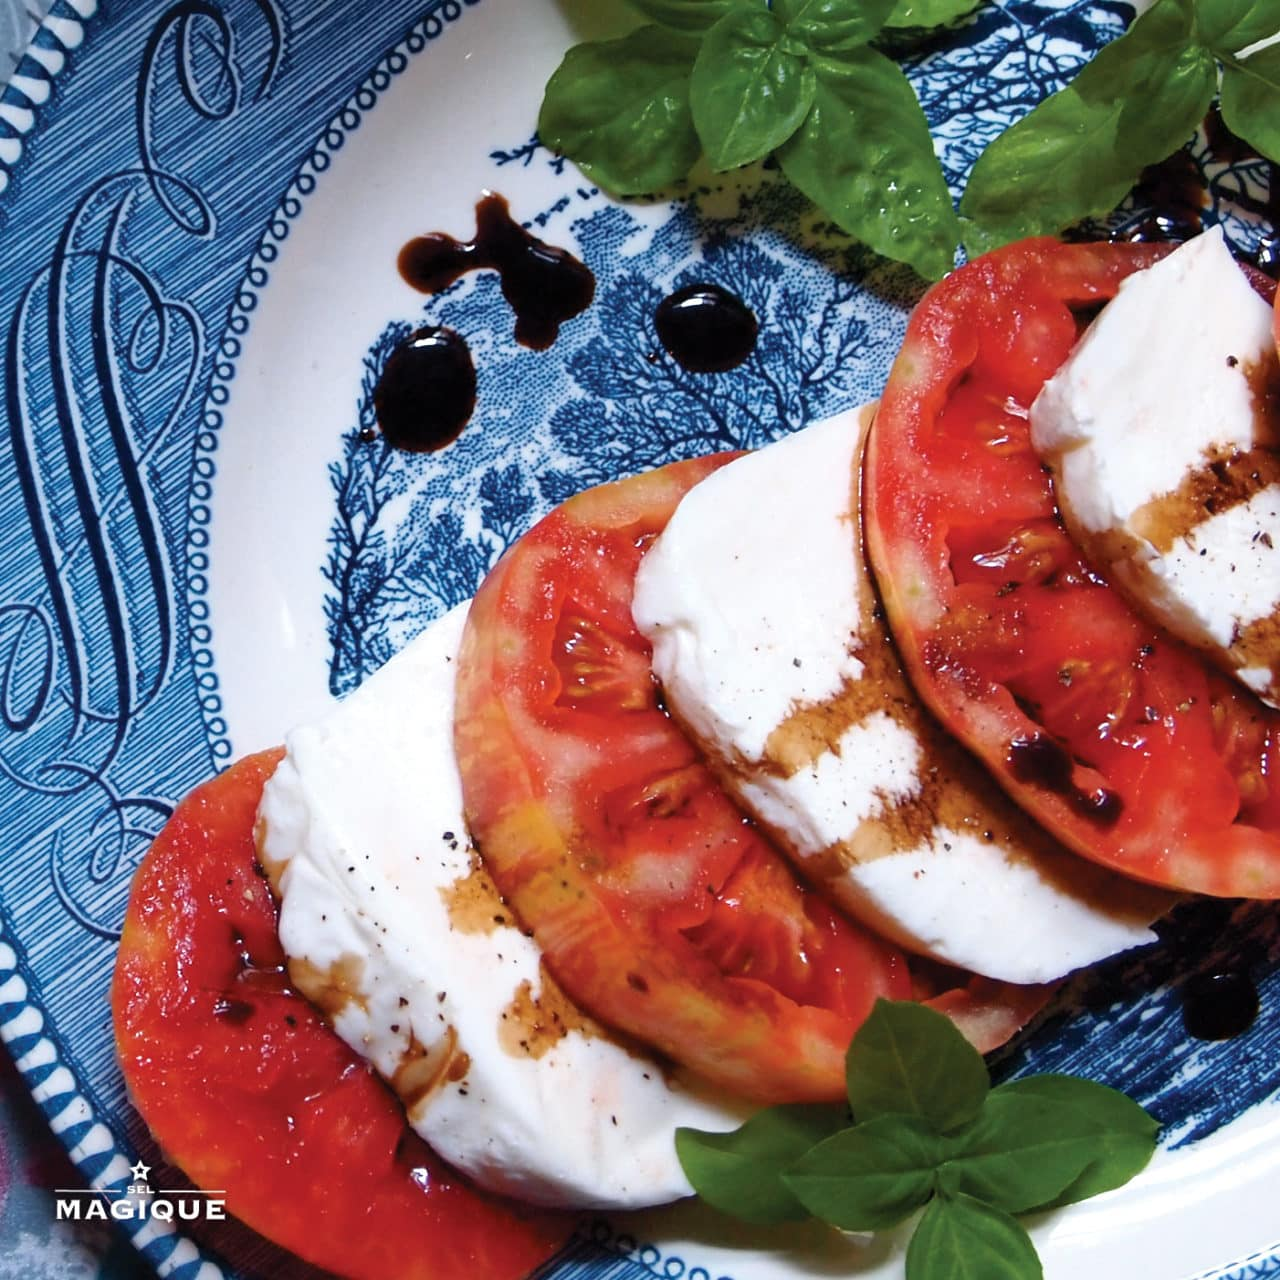 Heirloom Tomato Buffalo Mozzarella Caprese Sel Magique